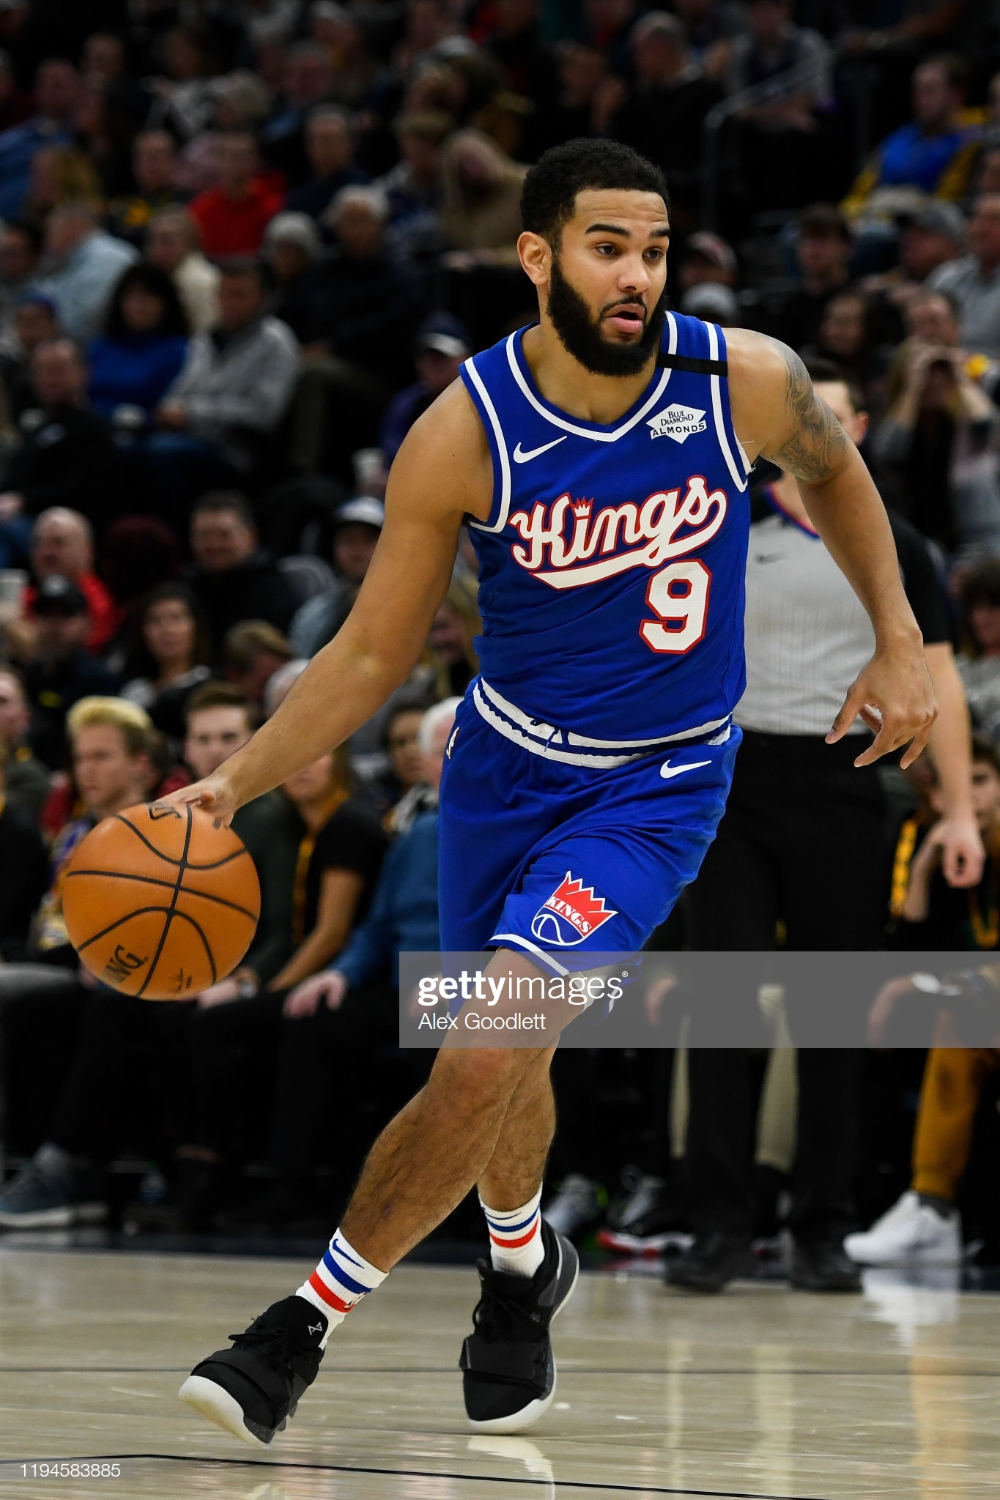 Cory Joseph of the Sacramento Kings in action during a